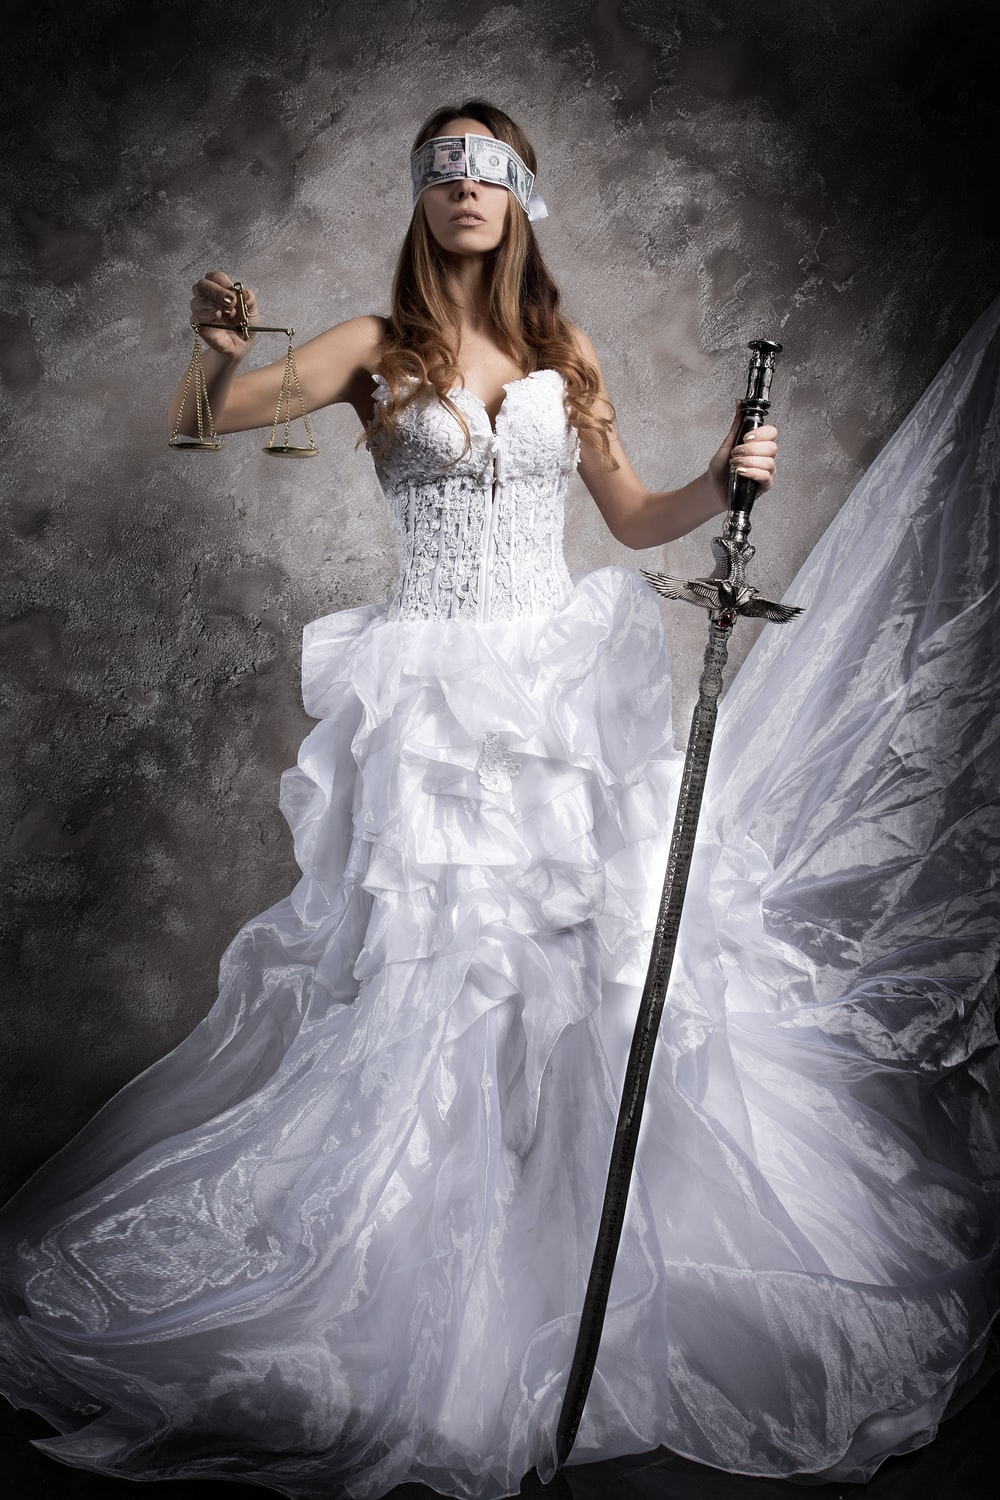 woman in white dress holding black and silver sword